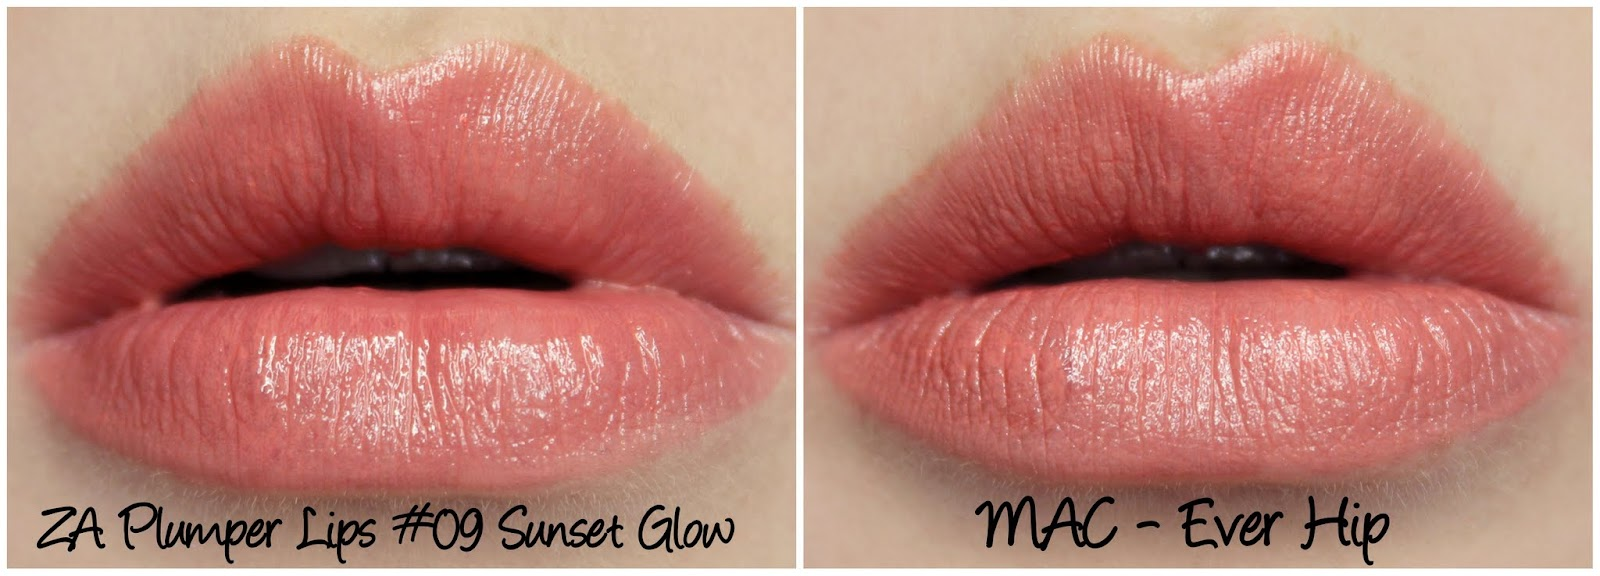 ZA Plumper Lips 09 Sunset Glow & MAC Ever Hip dupe comparison swatch